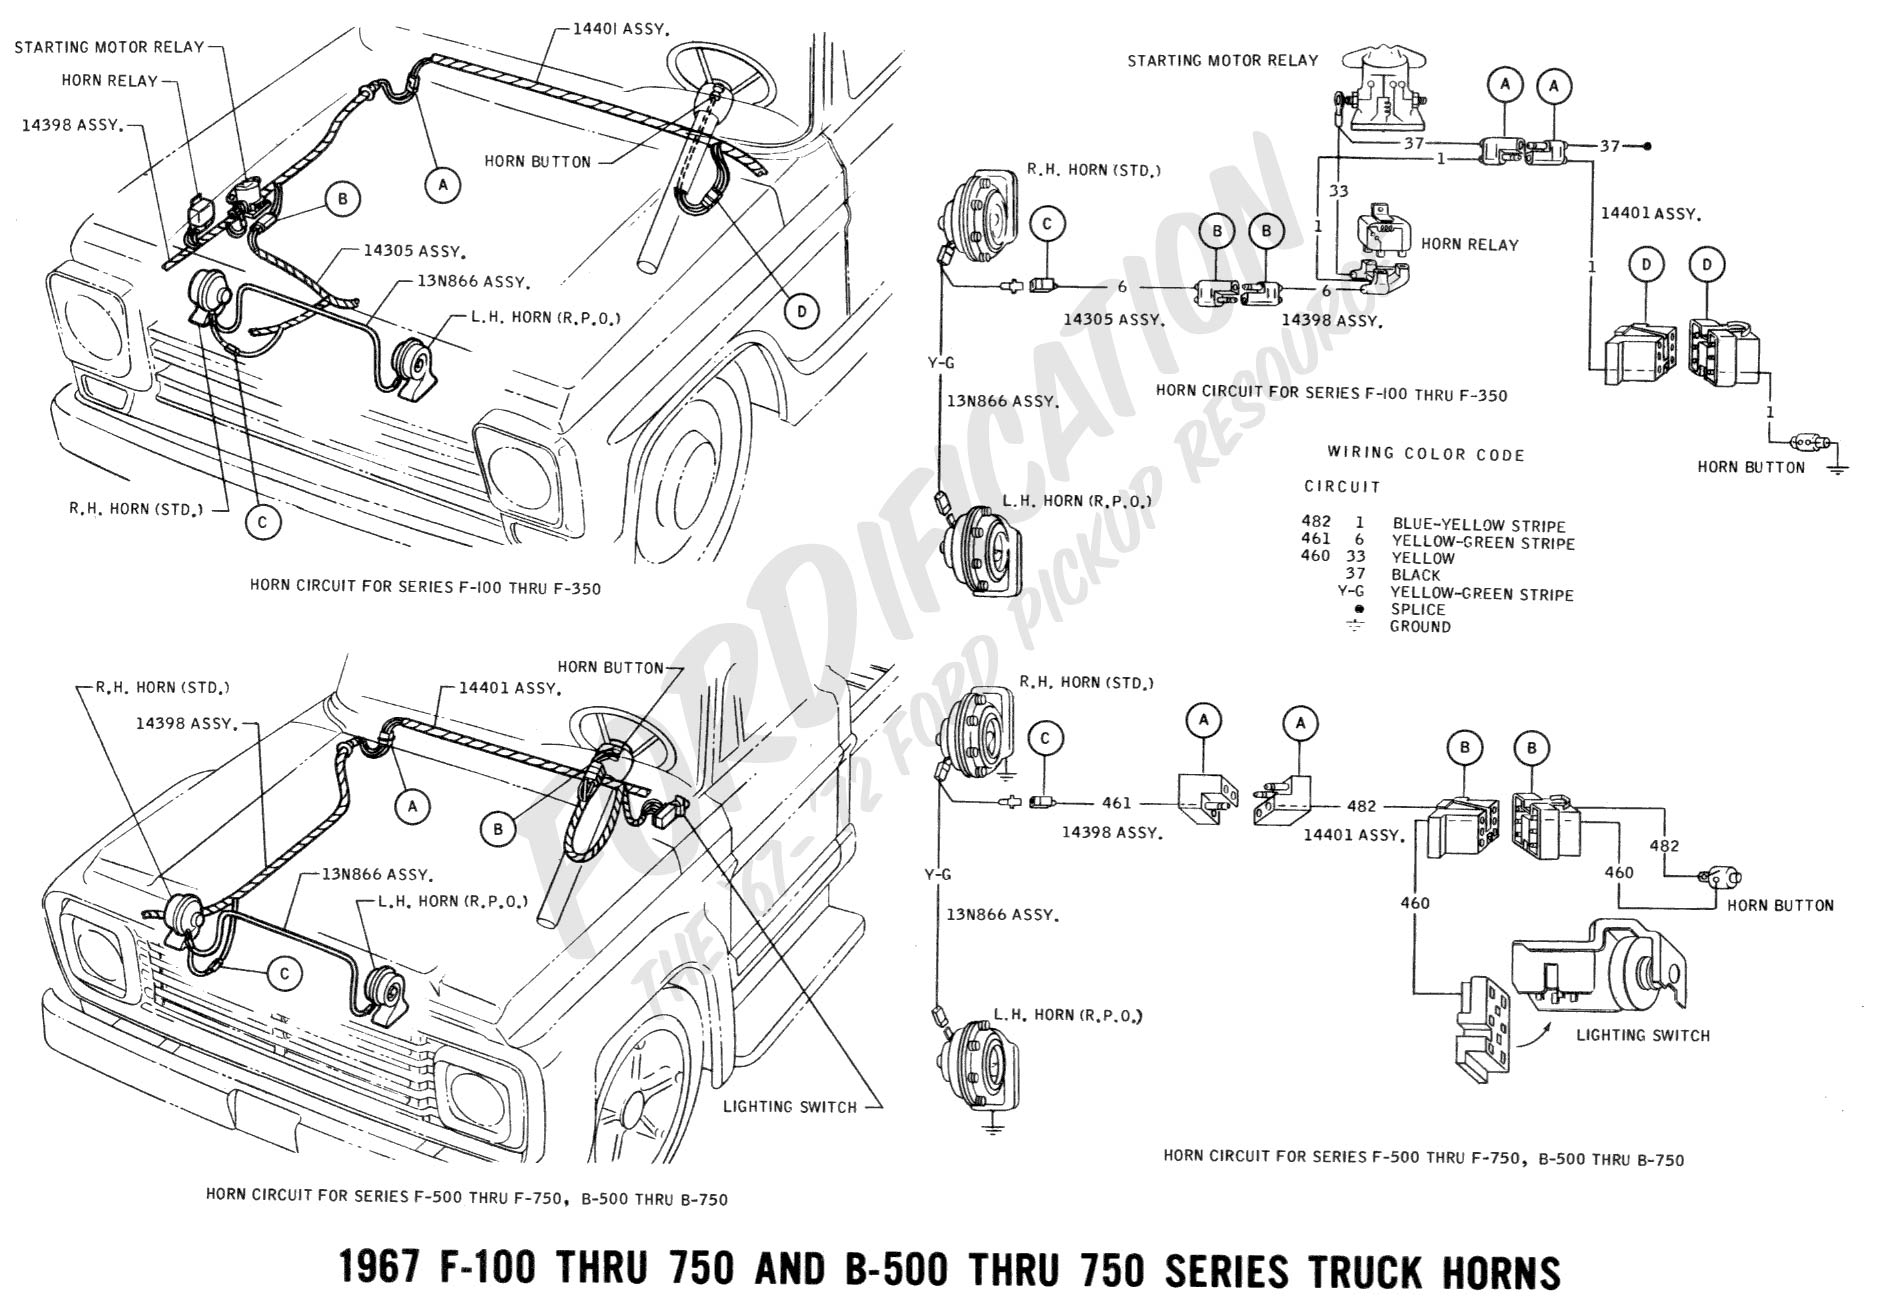 2009 F250 Fuse Box Diagram 73l Wiring Doing The New Way Ford Truck Technical Drawings And Schematics Section H Rh Fordification Com 2005 F 250